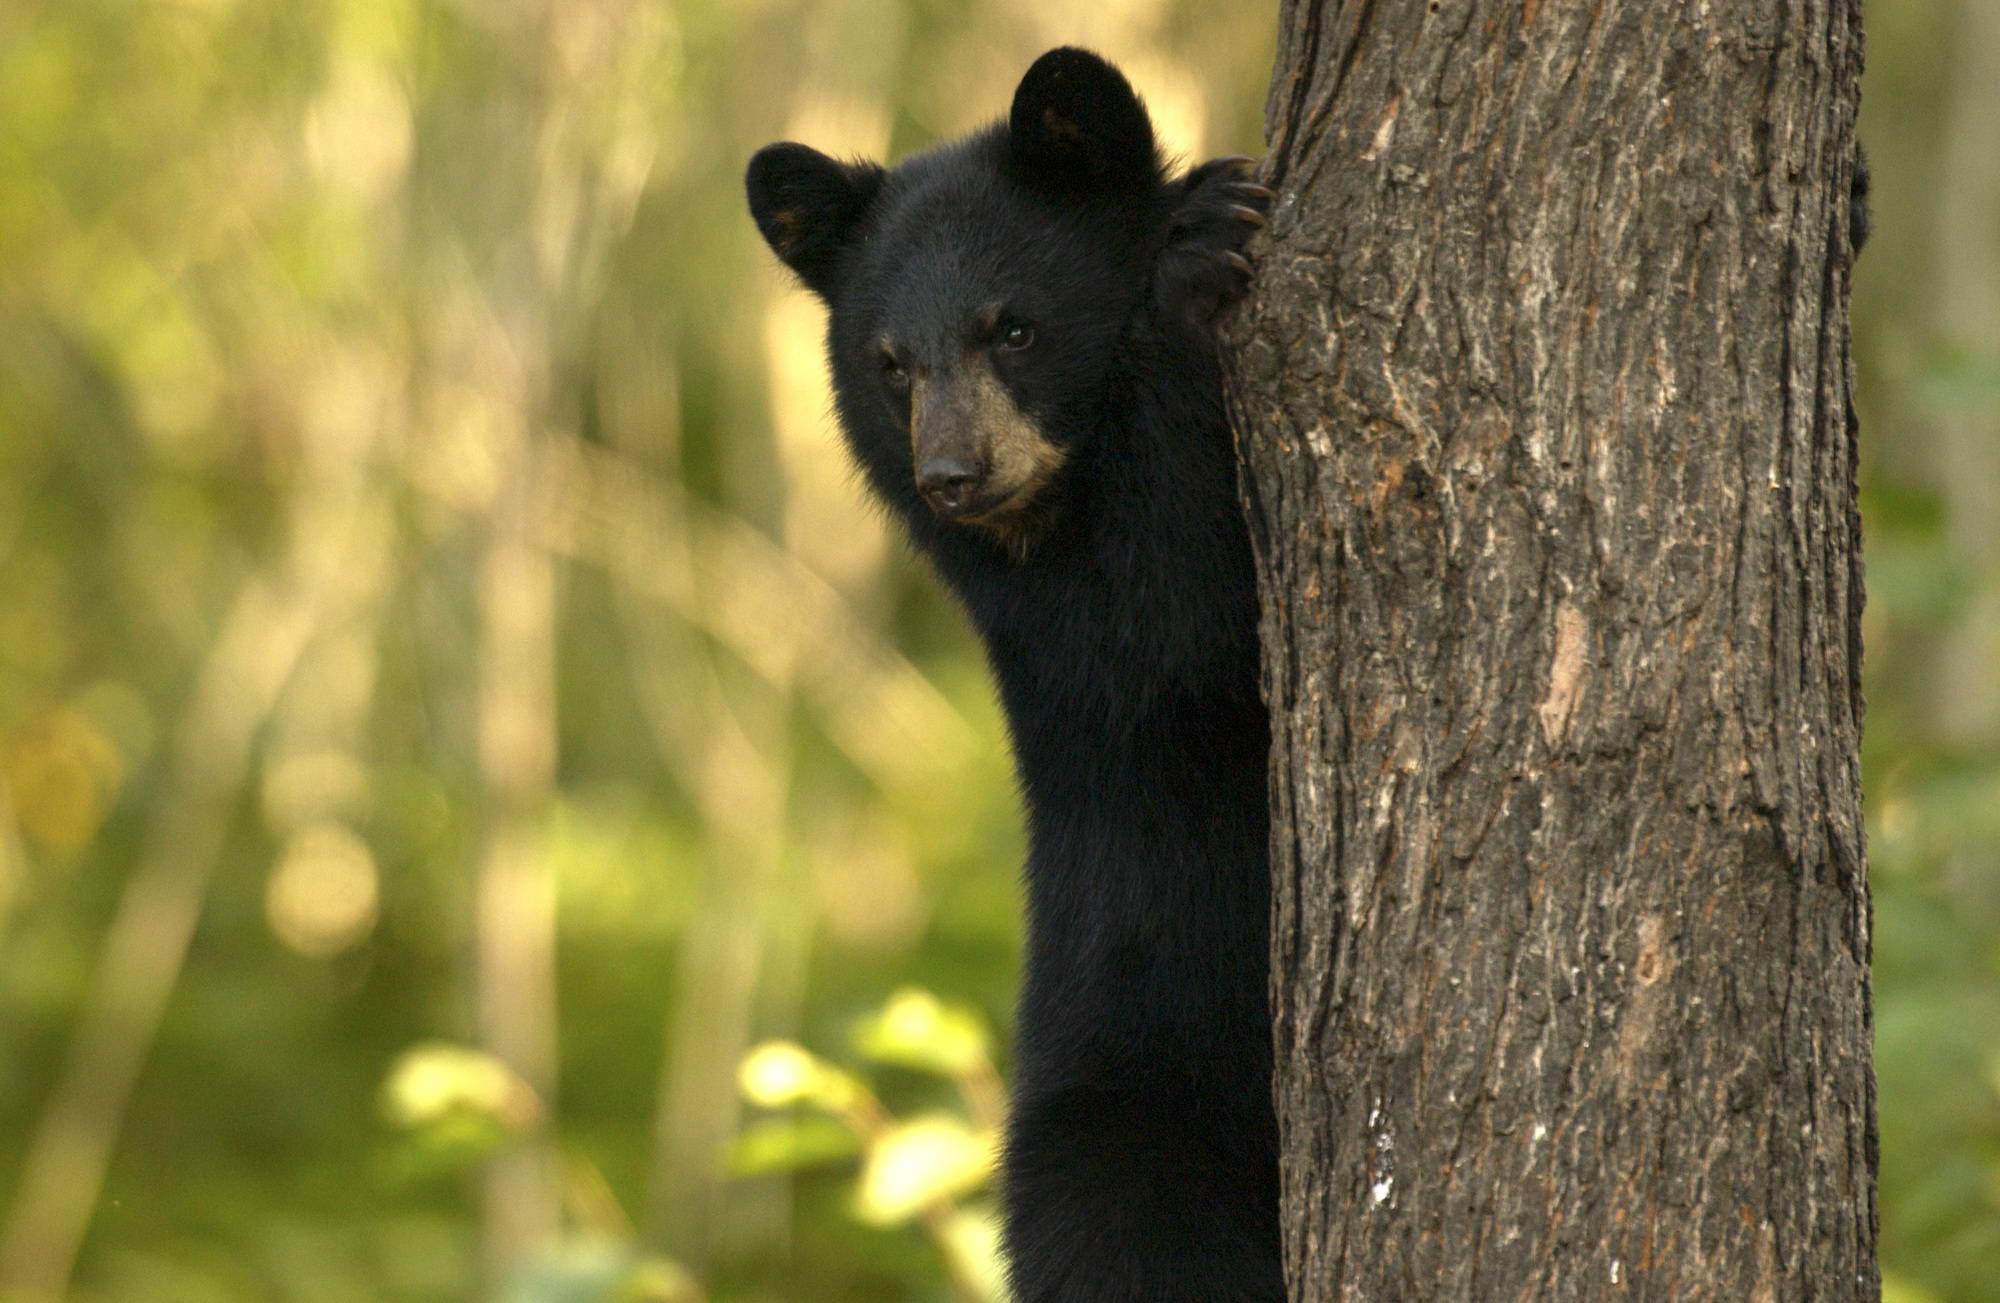 For many people, seeing a Michigan black bear in the wild, like the one shown here, is an amazing experience.